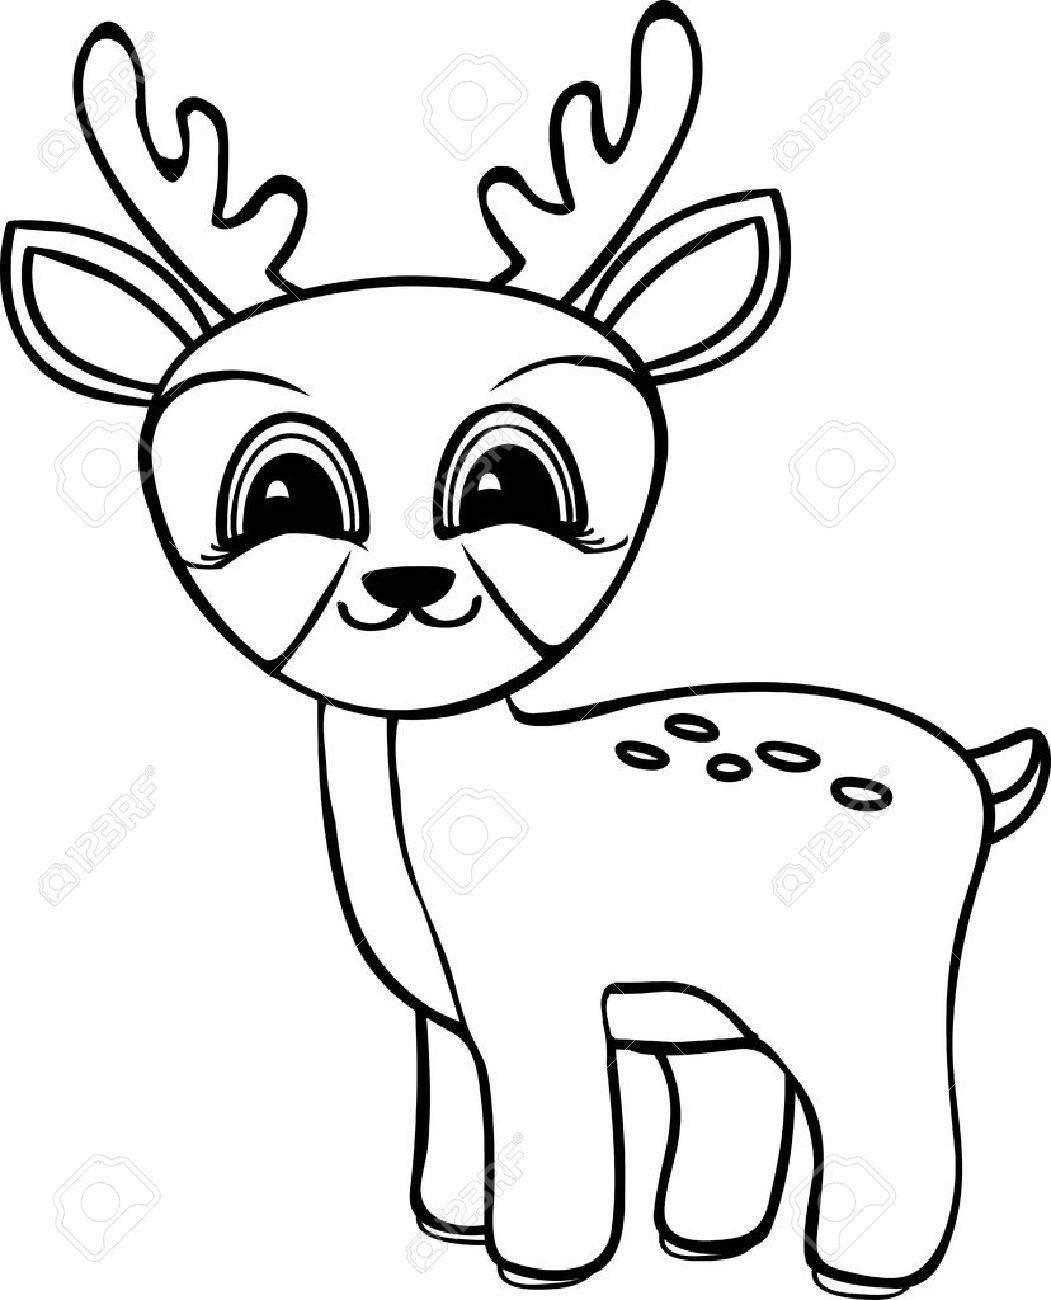 Baby Animals Online Coloring Pages | Page 1 | Deer coloring pages ... | 1300x1051